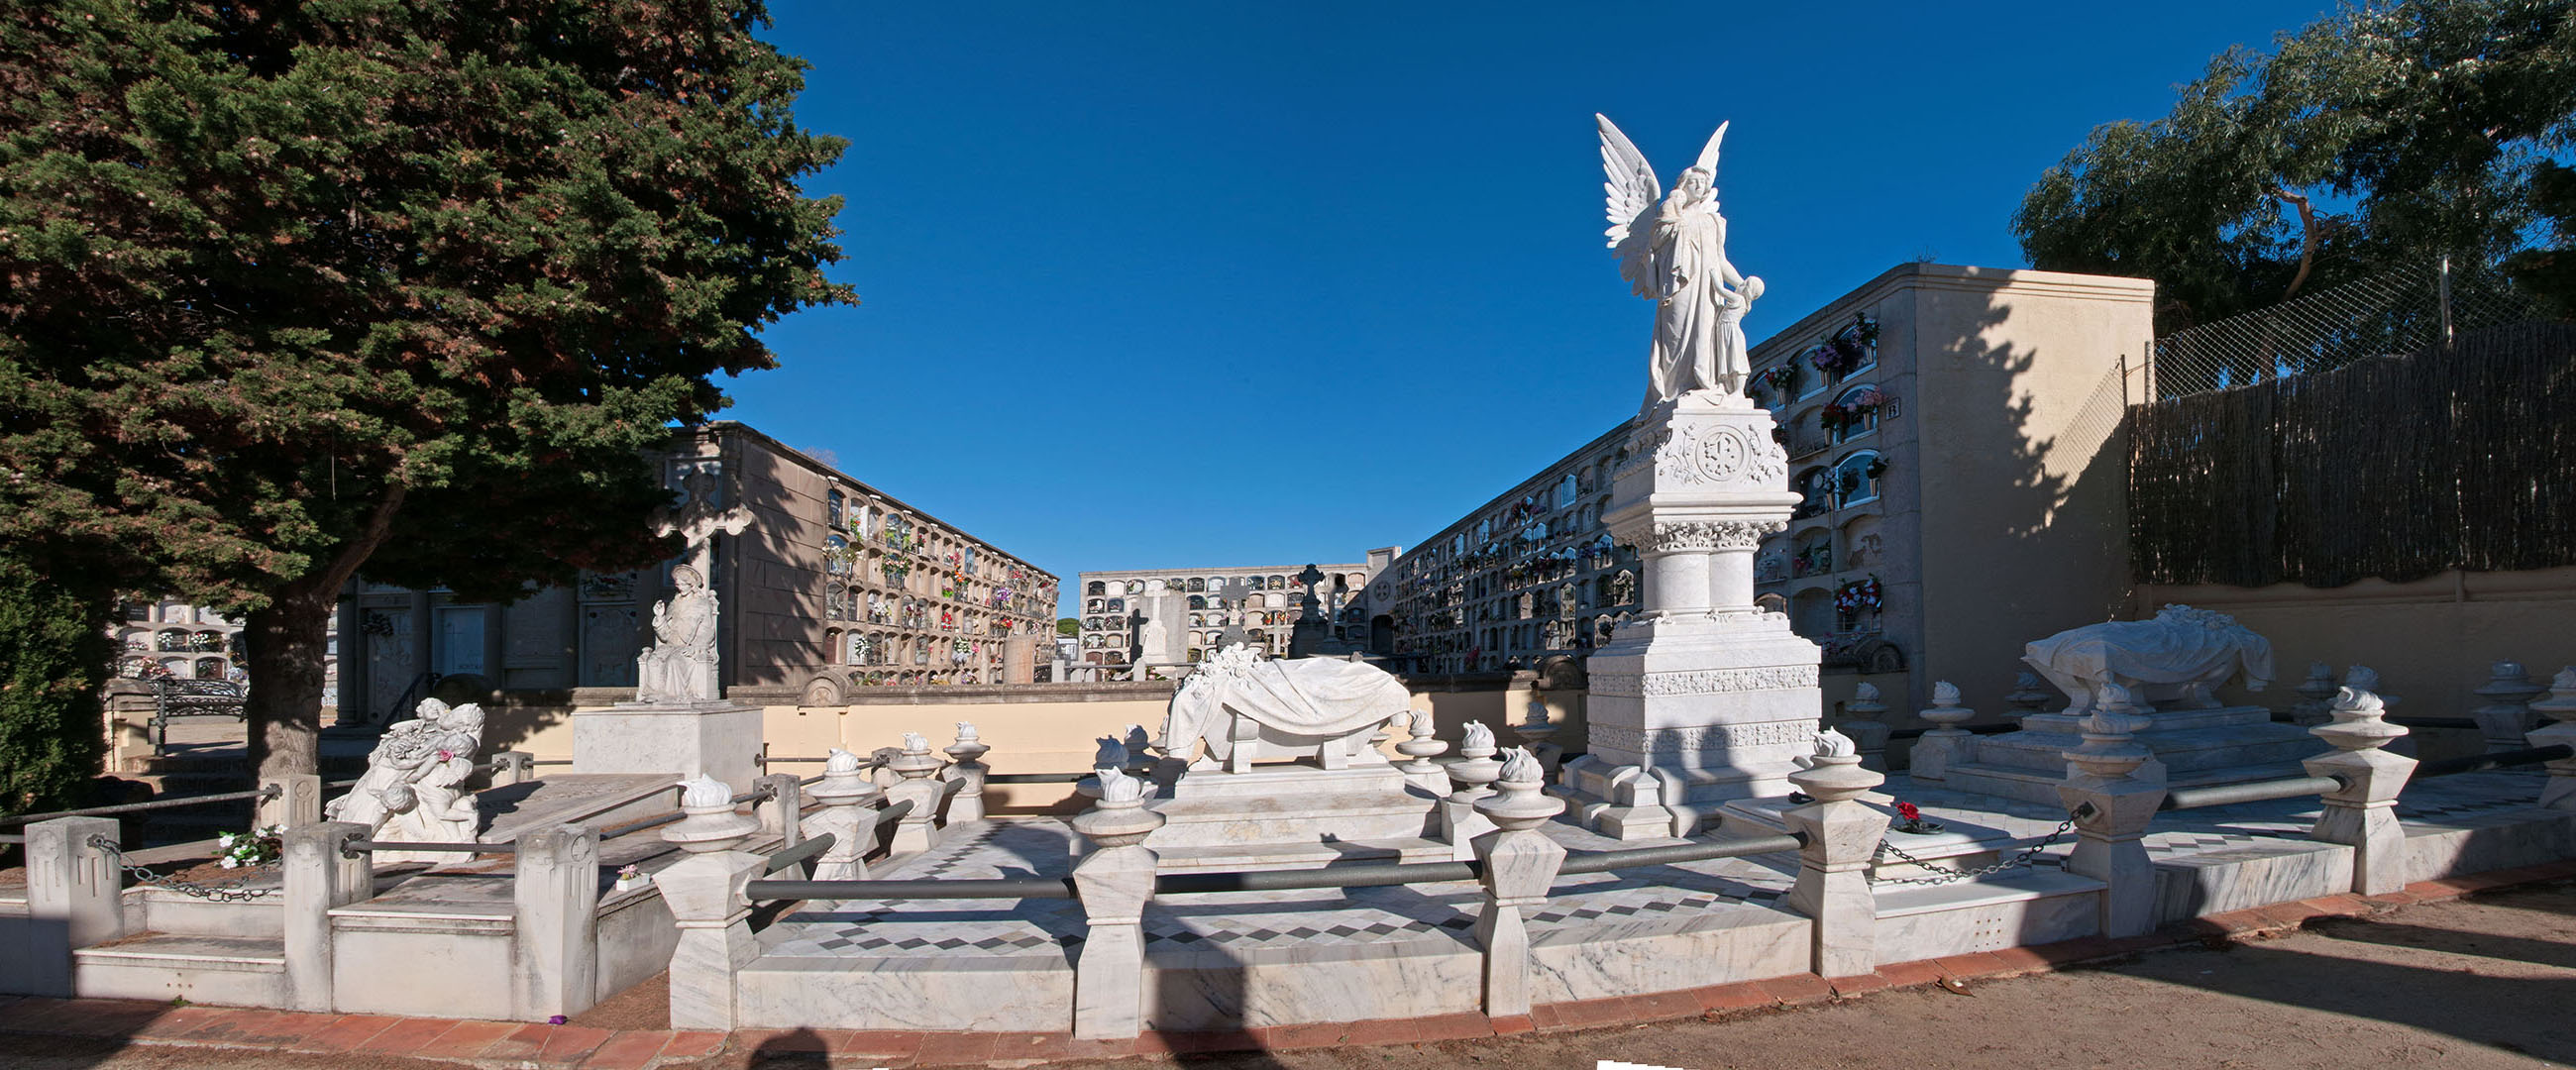 panorama-angel-arenys-int